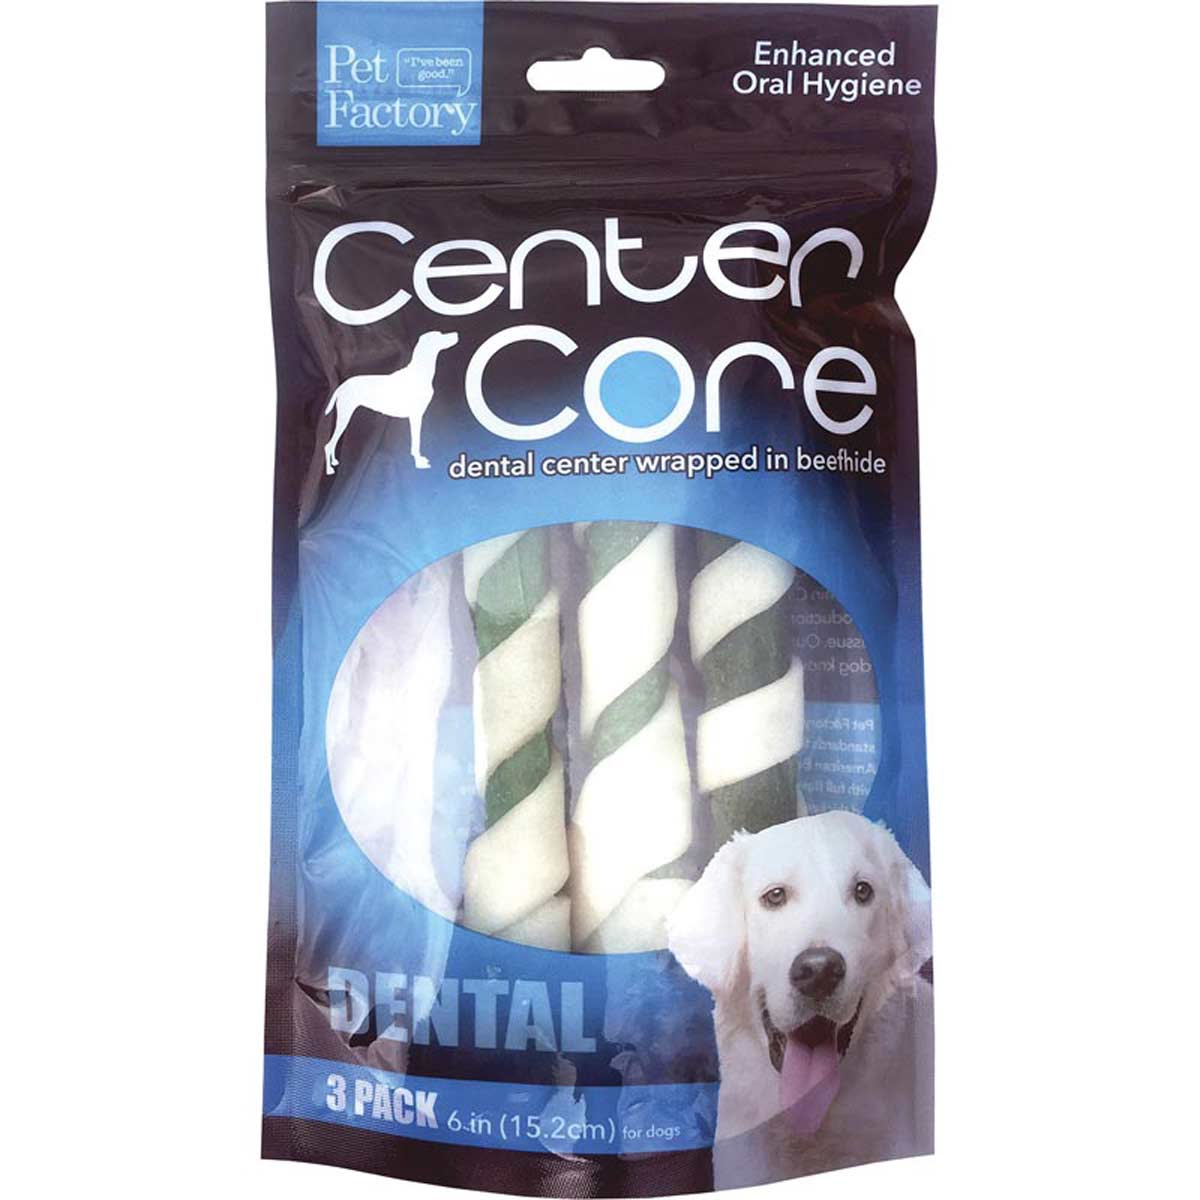 Pet Factory Center Core Dental 6 inch Rolls 3 Pack